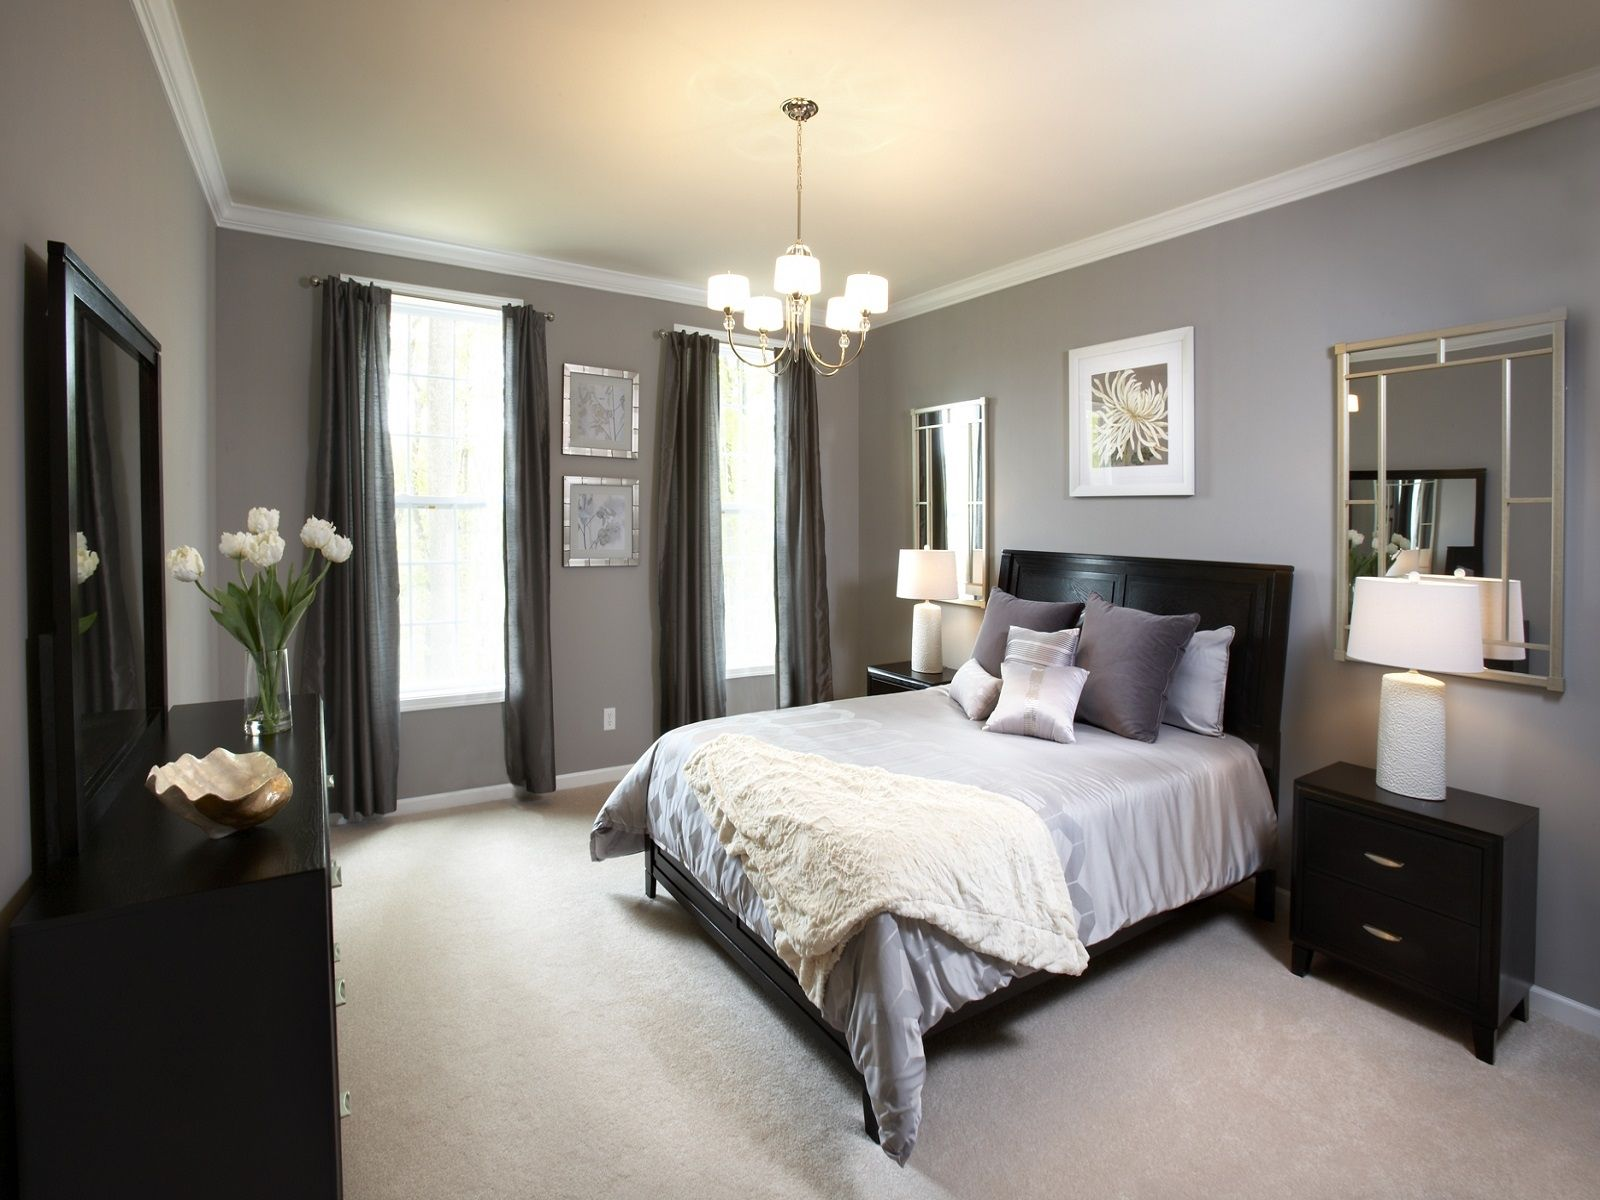 45 beautiful paint color ideas for master bedroom - Master Bedroom Decorating